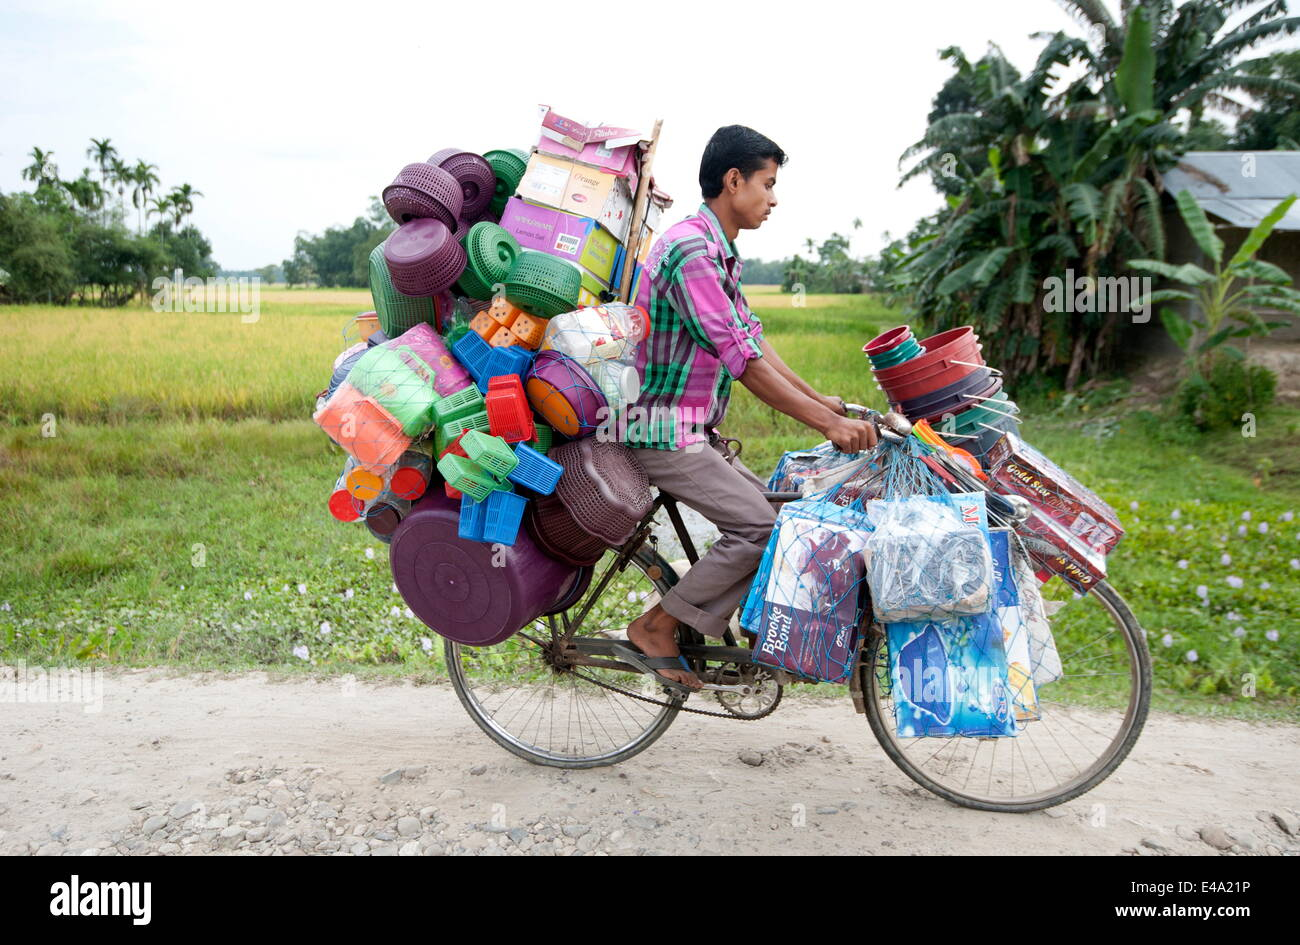 Young village tradesman cycling with a large load of plastic houseware, Majuli, Assam, India, Asia Stock Photo